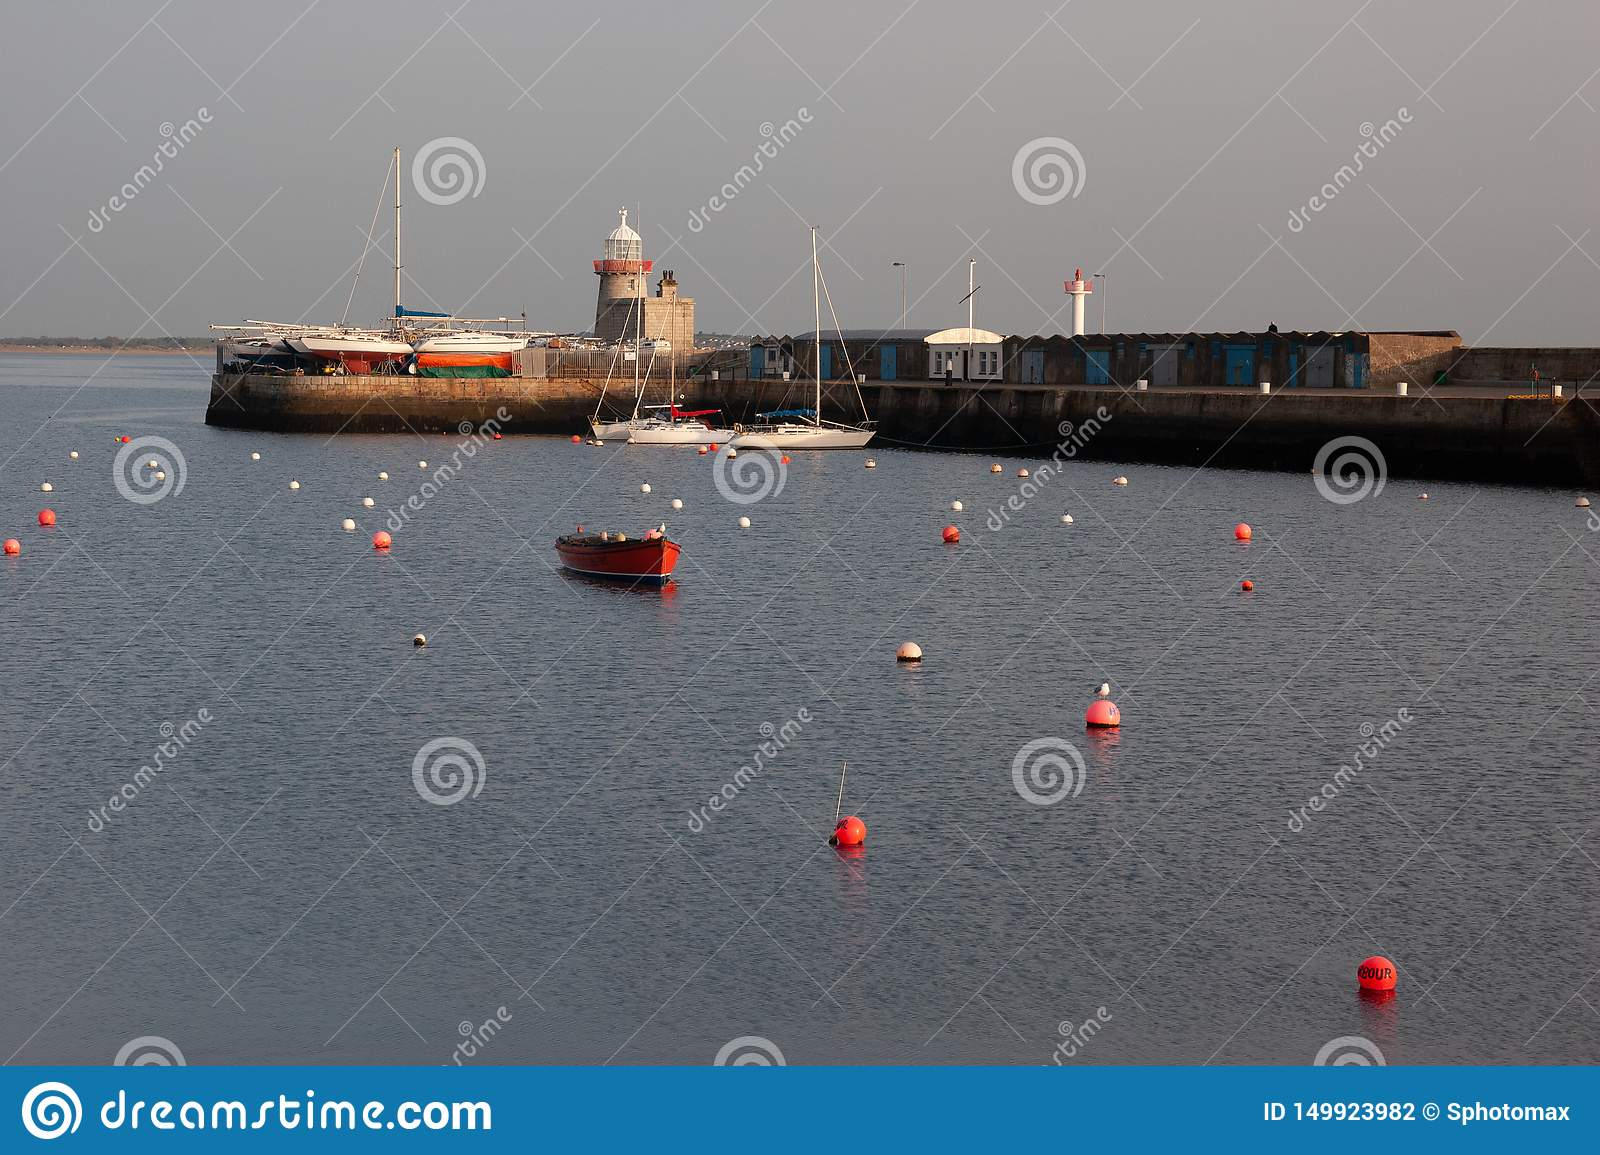 Lighthouse at Howth port. Howth is a fishing small port near Dublin Bay.